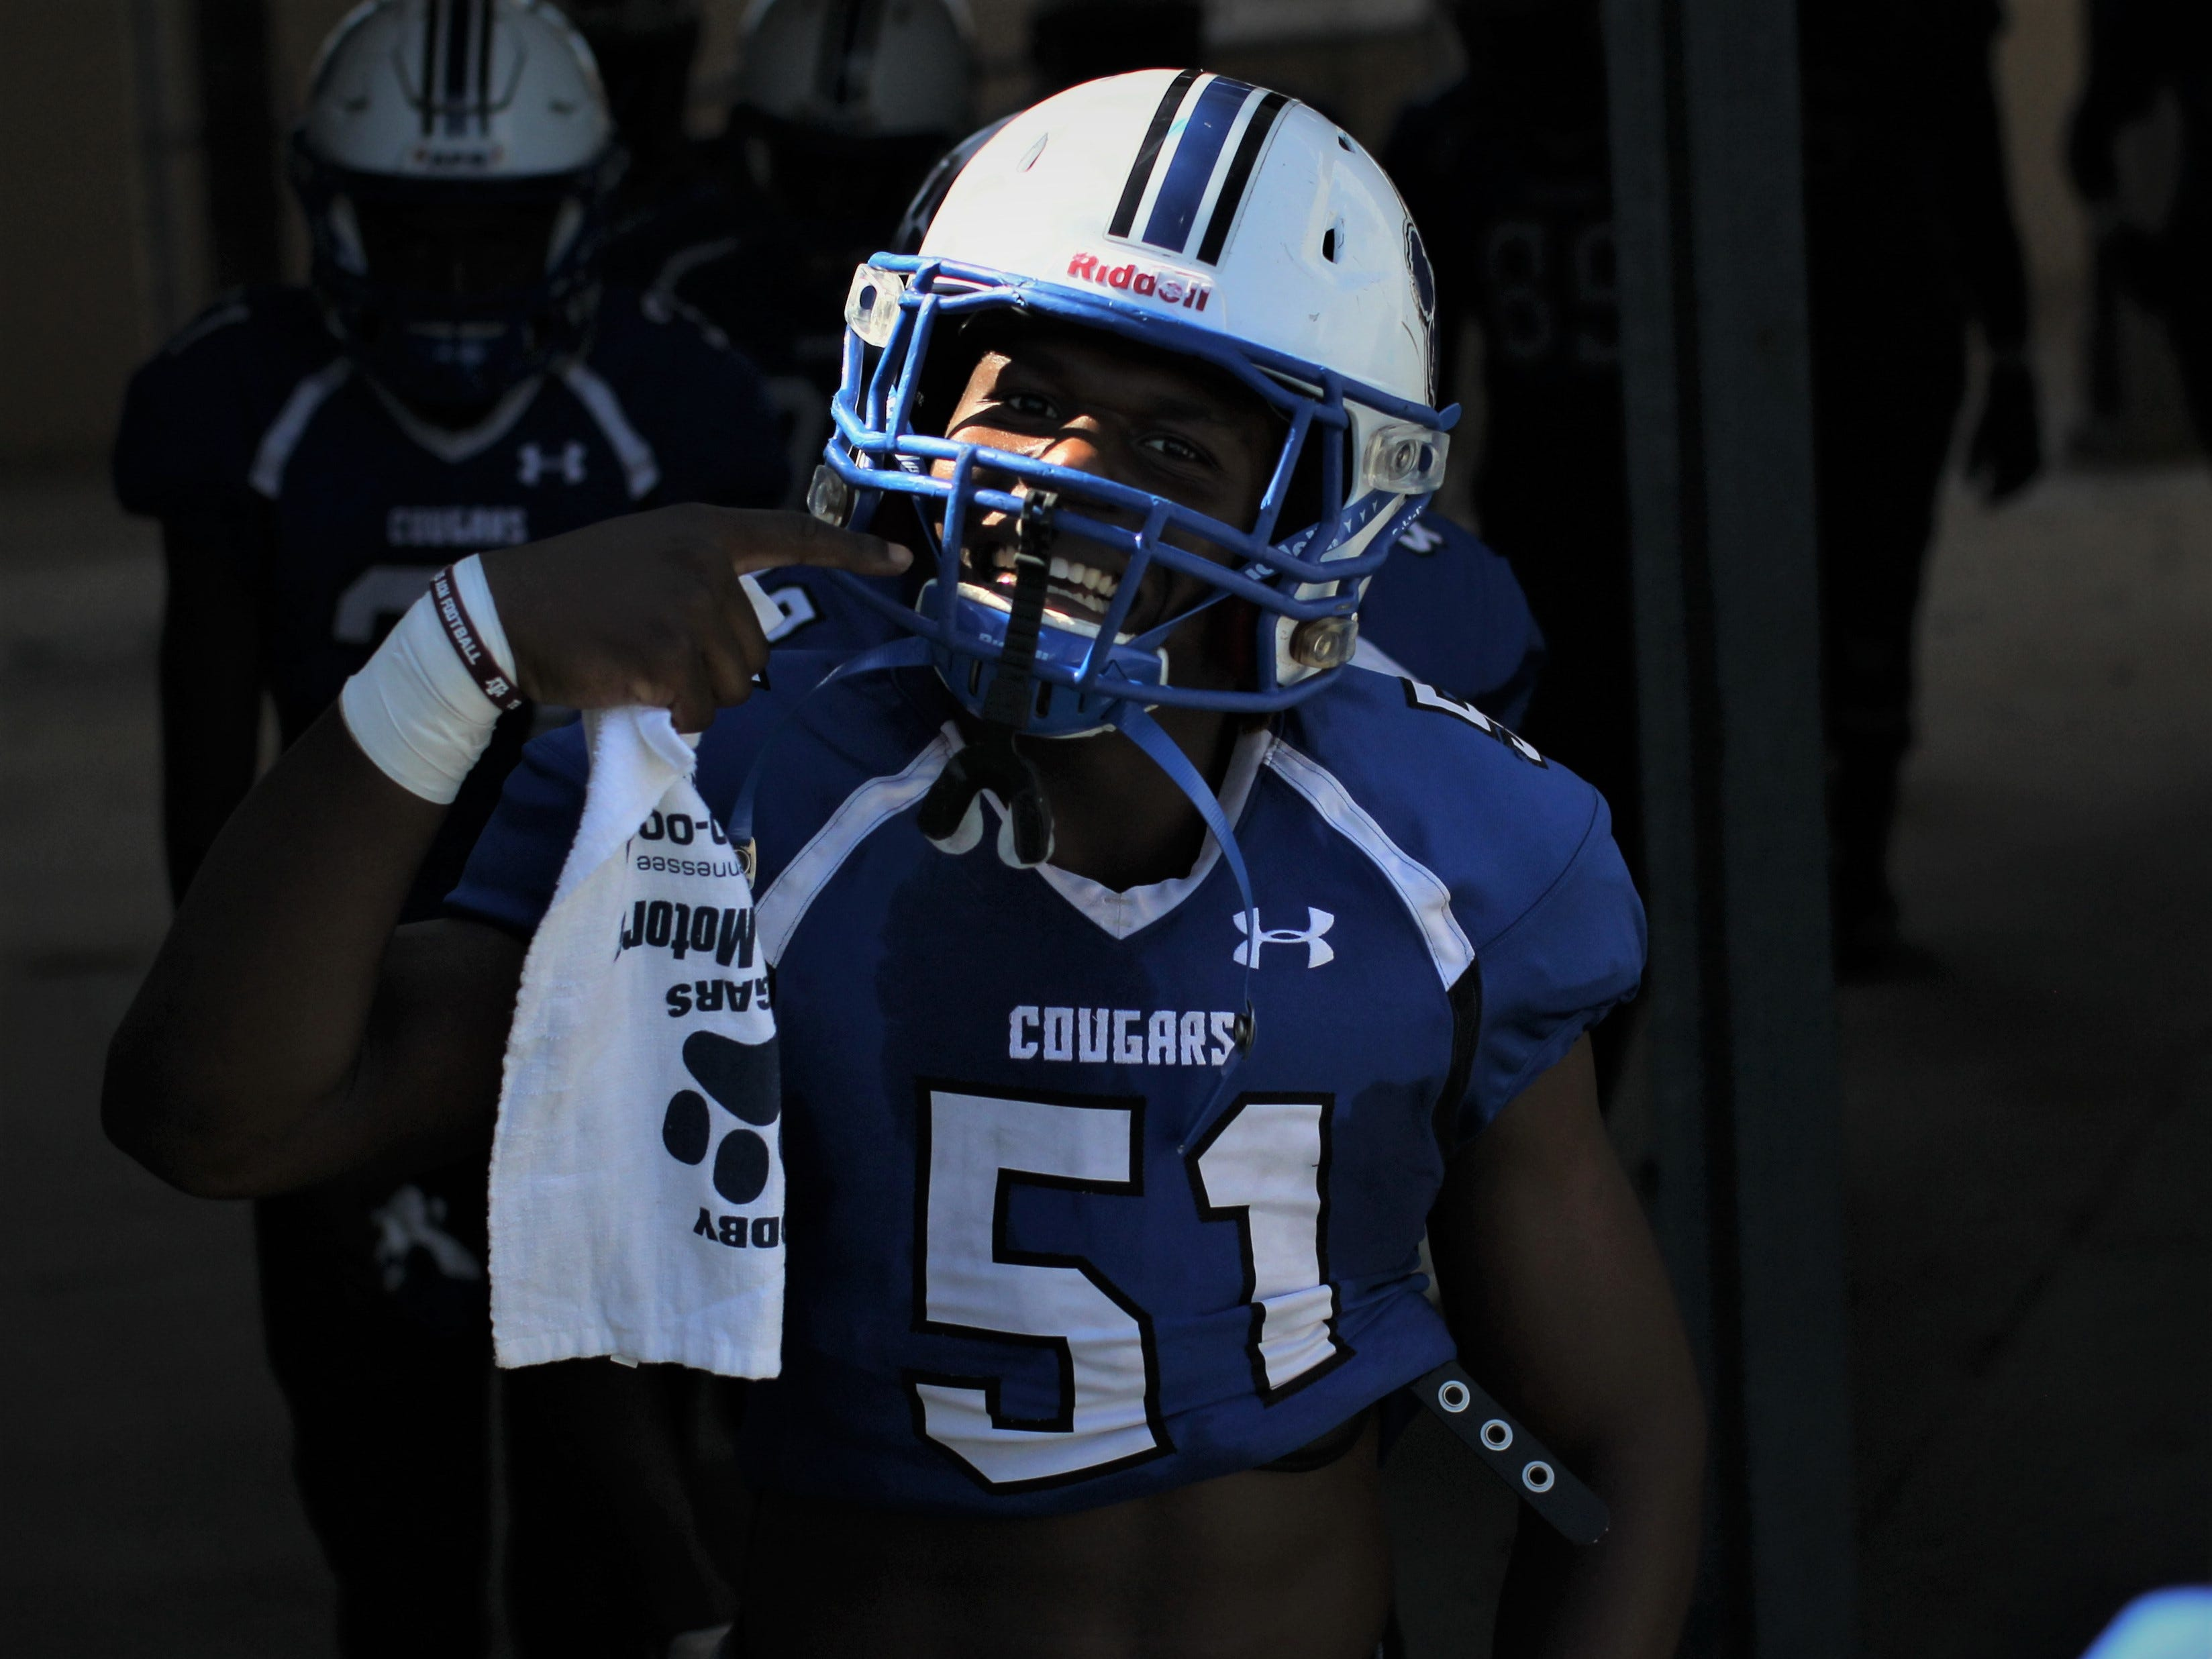 Godby's Malcolm Small gets hyped before playing Rickards.